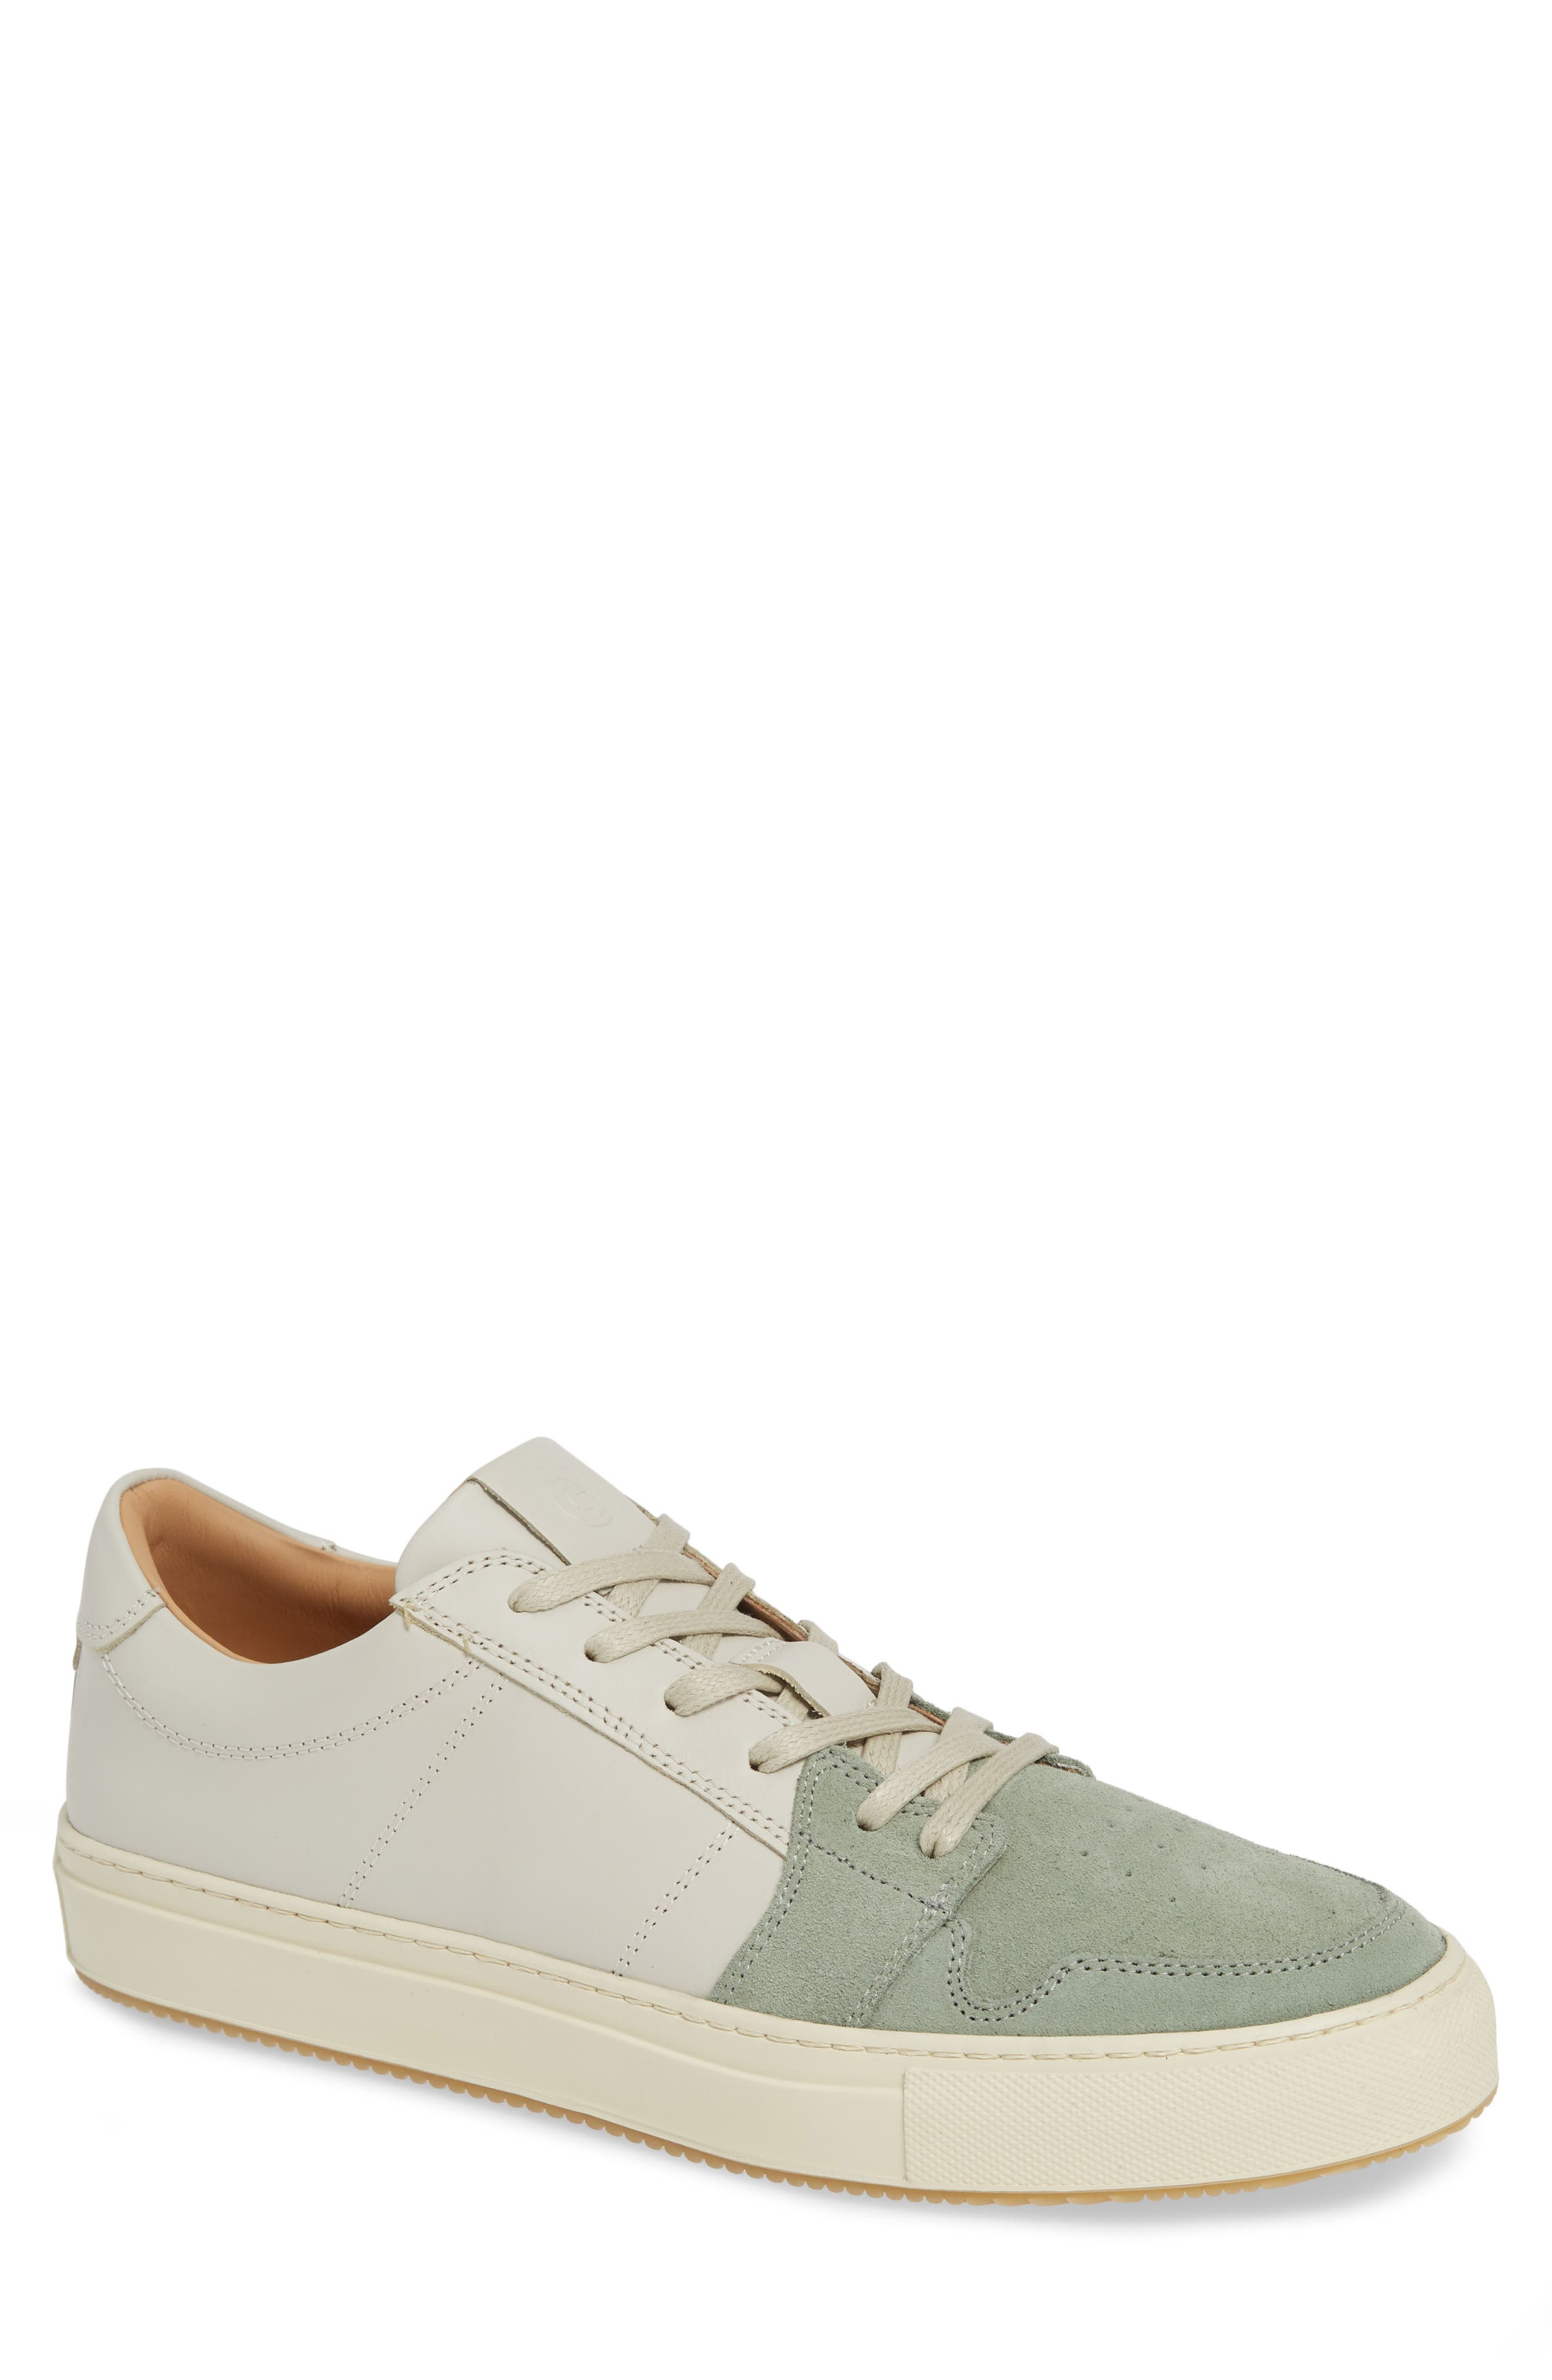 GREATS Court Sneaker in Silver/ Loden Frost Leather